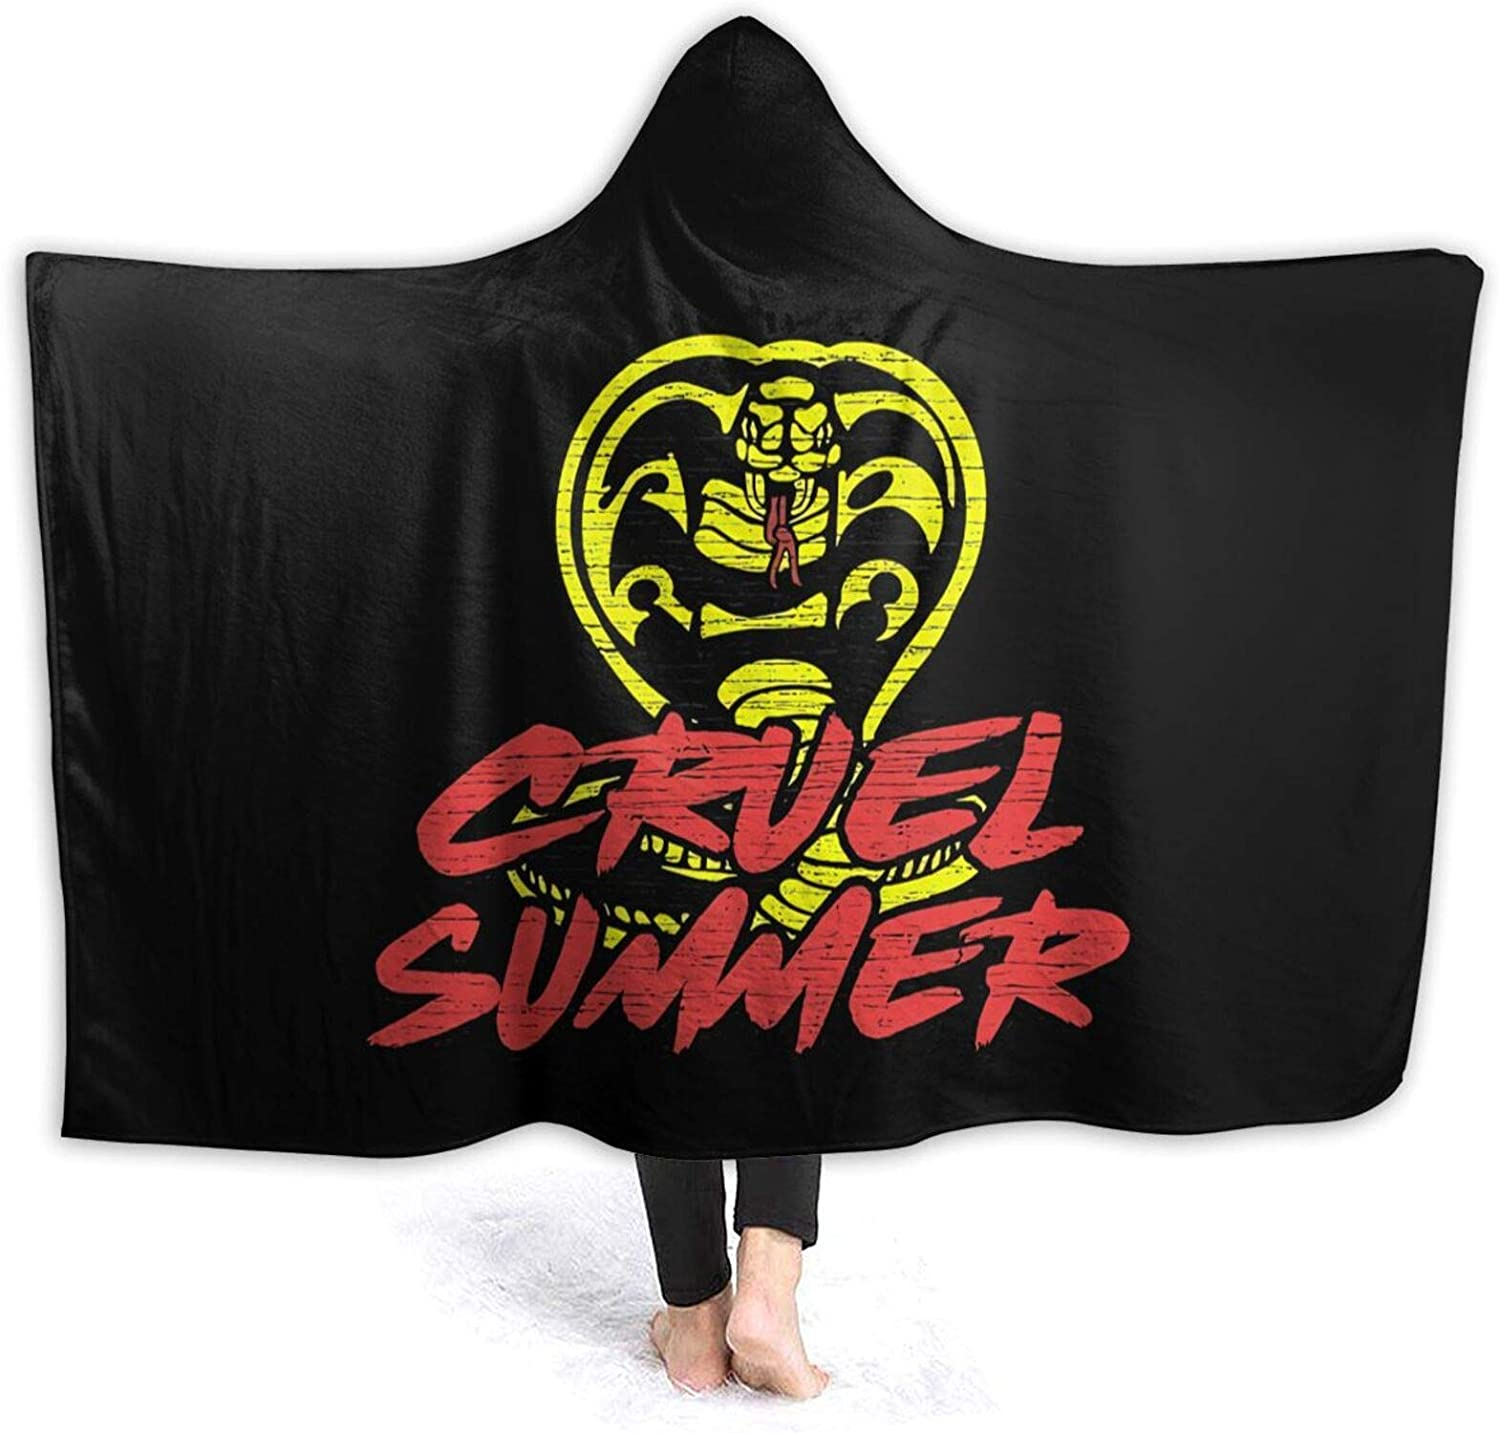 Mniunision Cobra-Kai-Denim-Dad with Cap Soft Warm Blanket, Flannel Fleece Blanket, Super Soft Micro-Velvet Blanket, Plush Bed Sofa Living Room 60X50 inches